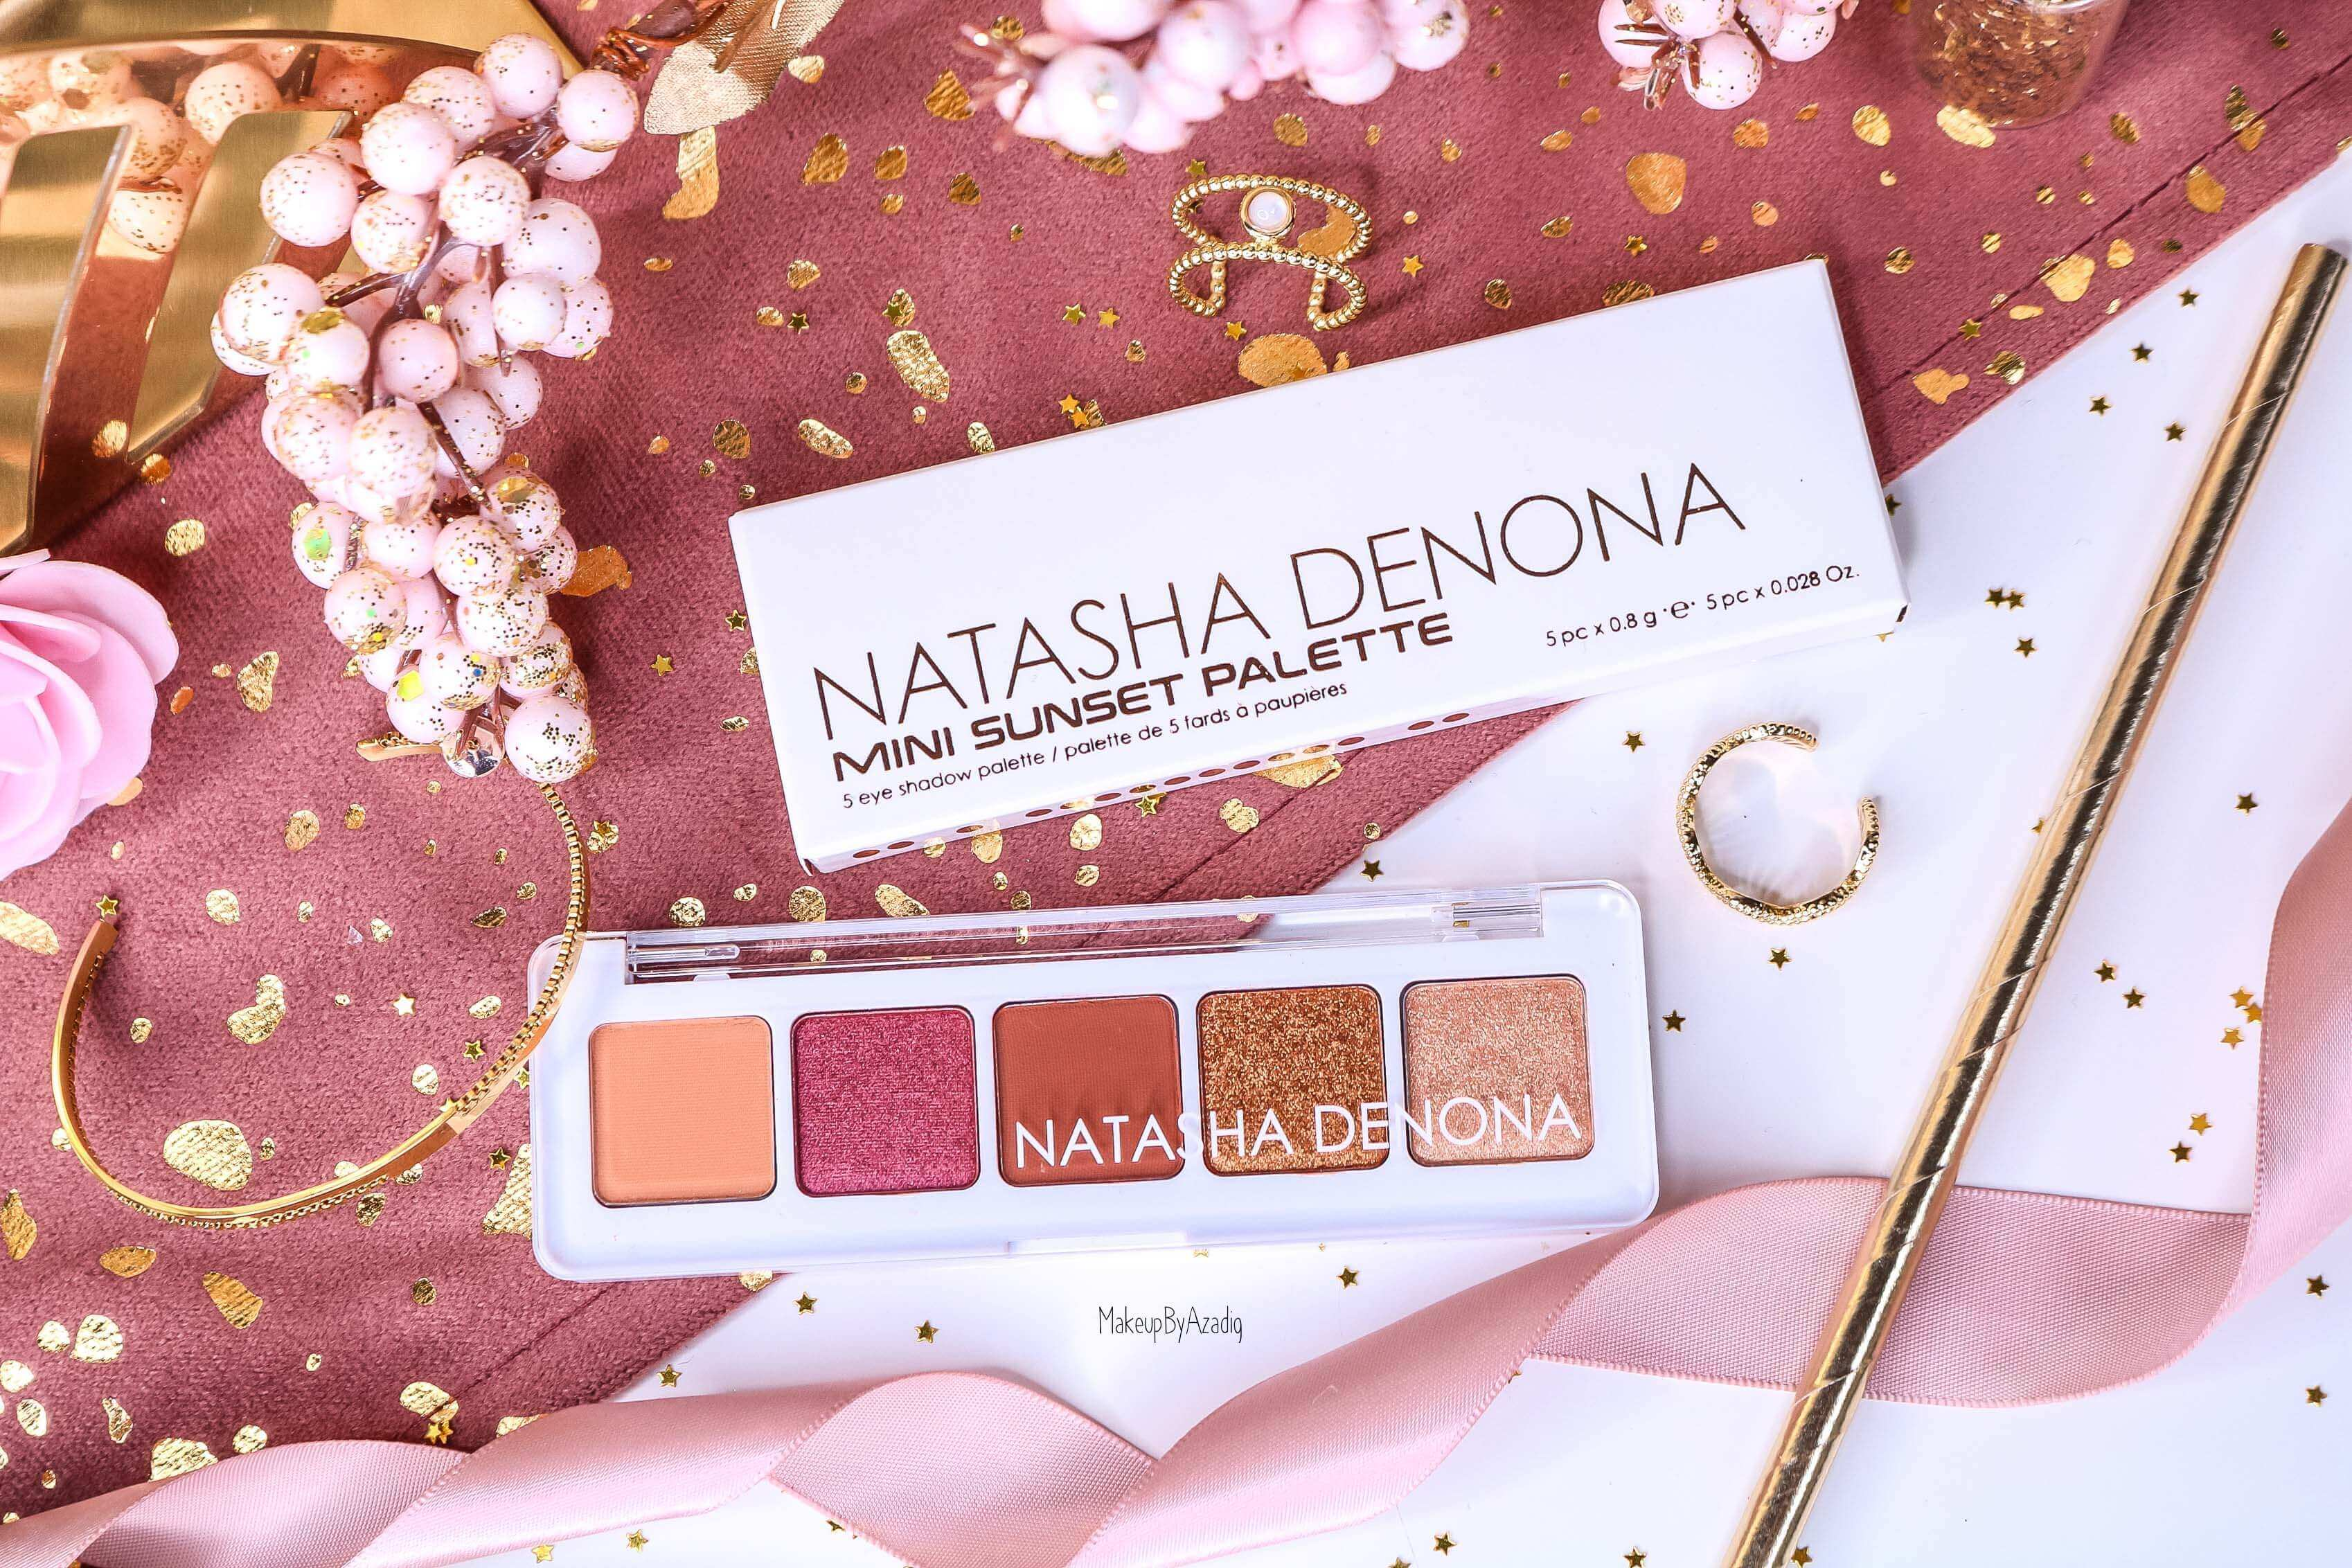 revue-palette-mini-sunset-natasha-denona-sephora-france-avis-prix-swatch-gold-champagne-burgundy-makeupbyazadig-eyeshadow-miniature